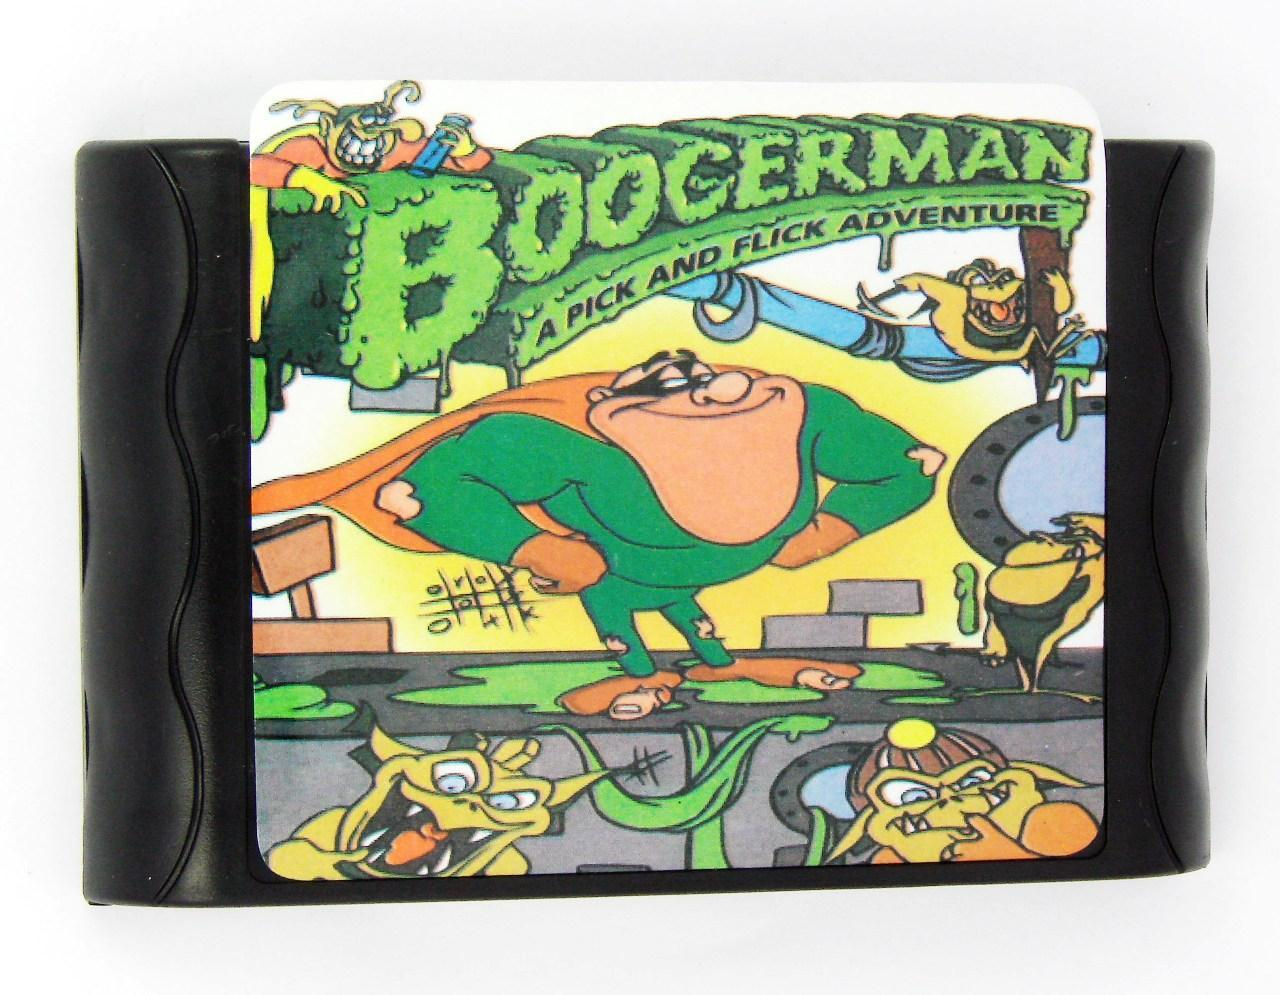 Картридж для Sega Boogerman: a pick and flick adventure (Sega)